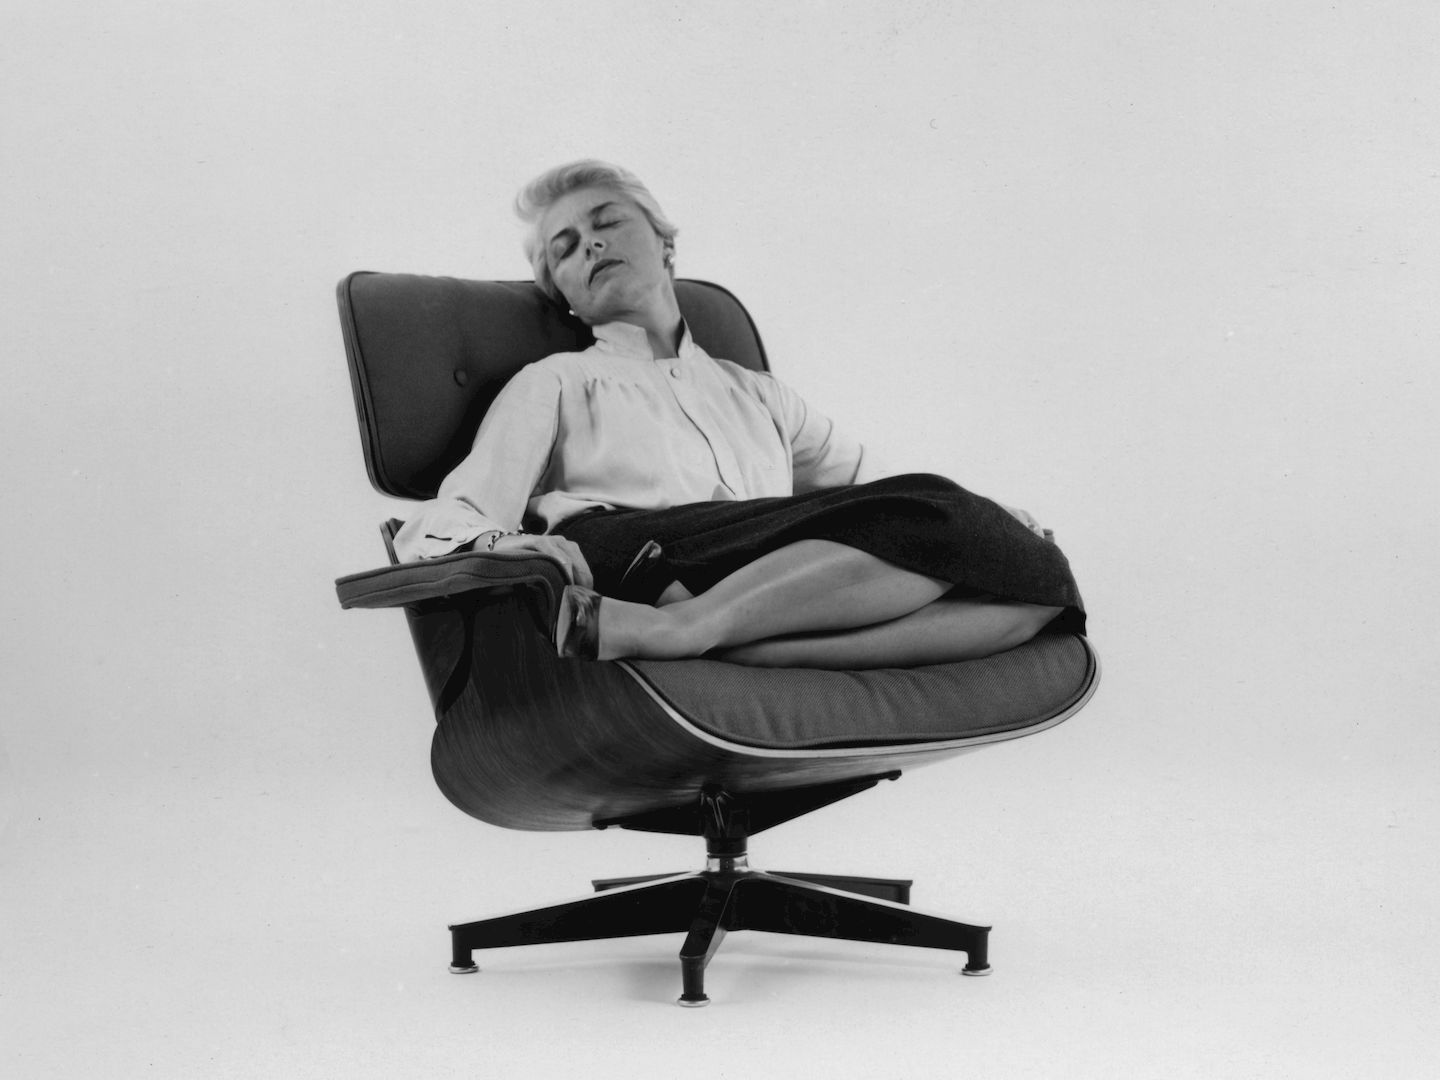 When Charles And Ray Eames Designed The Eames Lounge Chair In 1956,  Comfortable, Soft Seating Ranked High Amongst The Key Objectives.